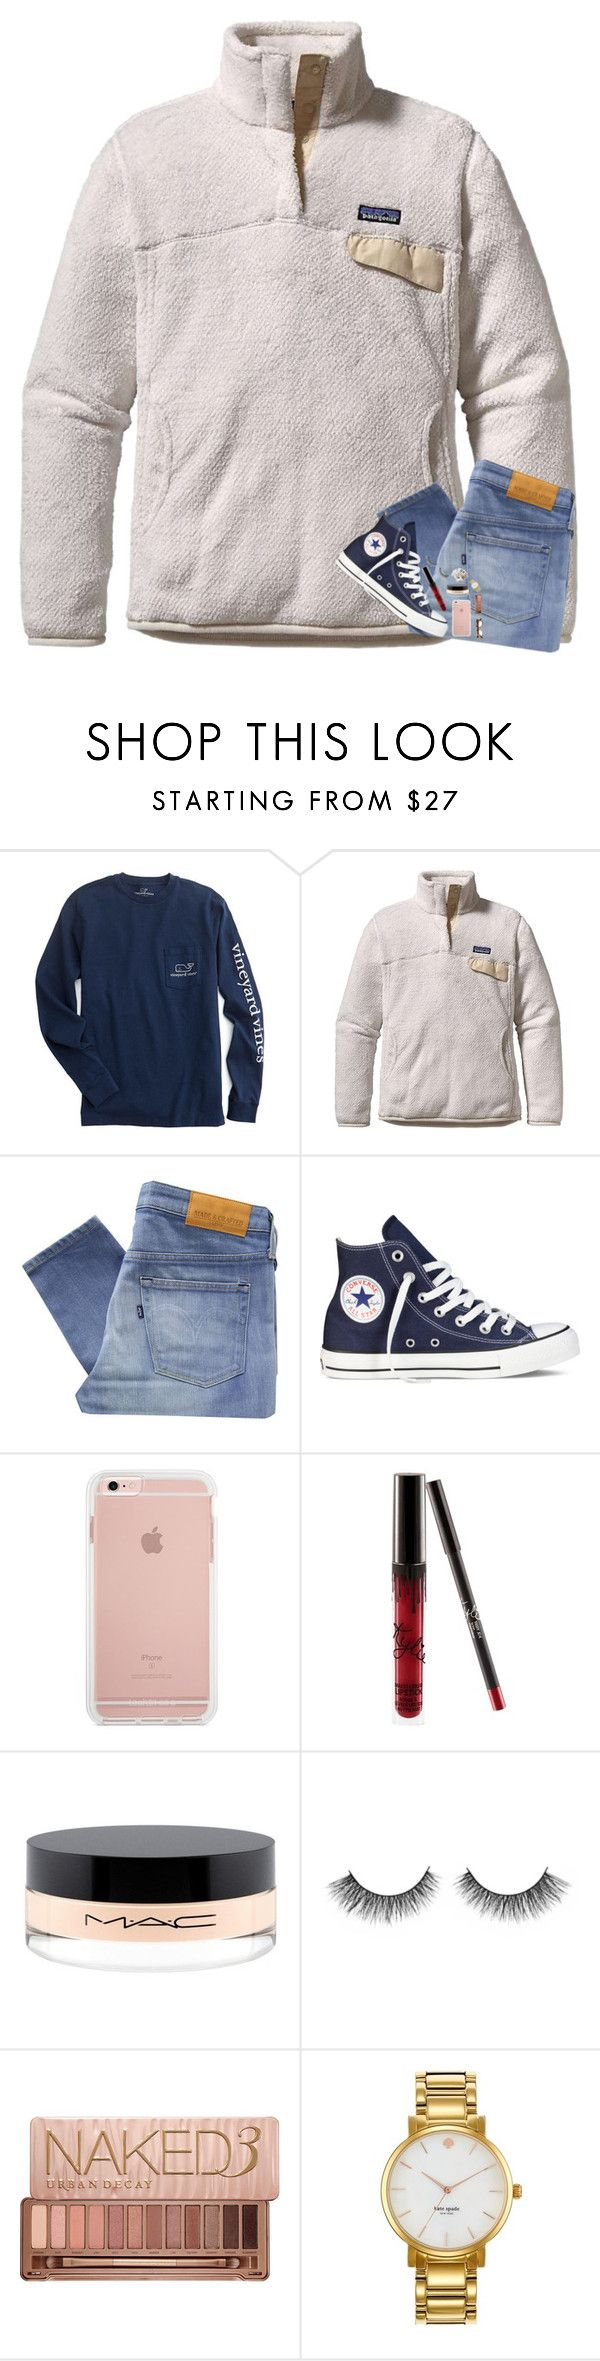 """Contest Entry"" by kat-attack ❤ liked on Polyvore featuring Patagonia, Levi's Made & Crafted, Converse, Kylie Cosmetics, MAC Cosmetics, Urban Decay, Kate Spade, Chronicle Books and paige100"